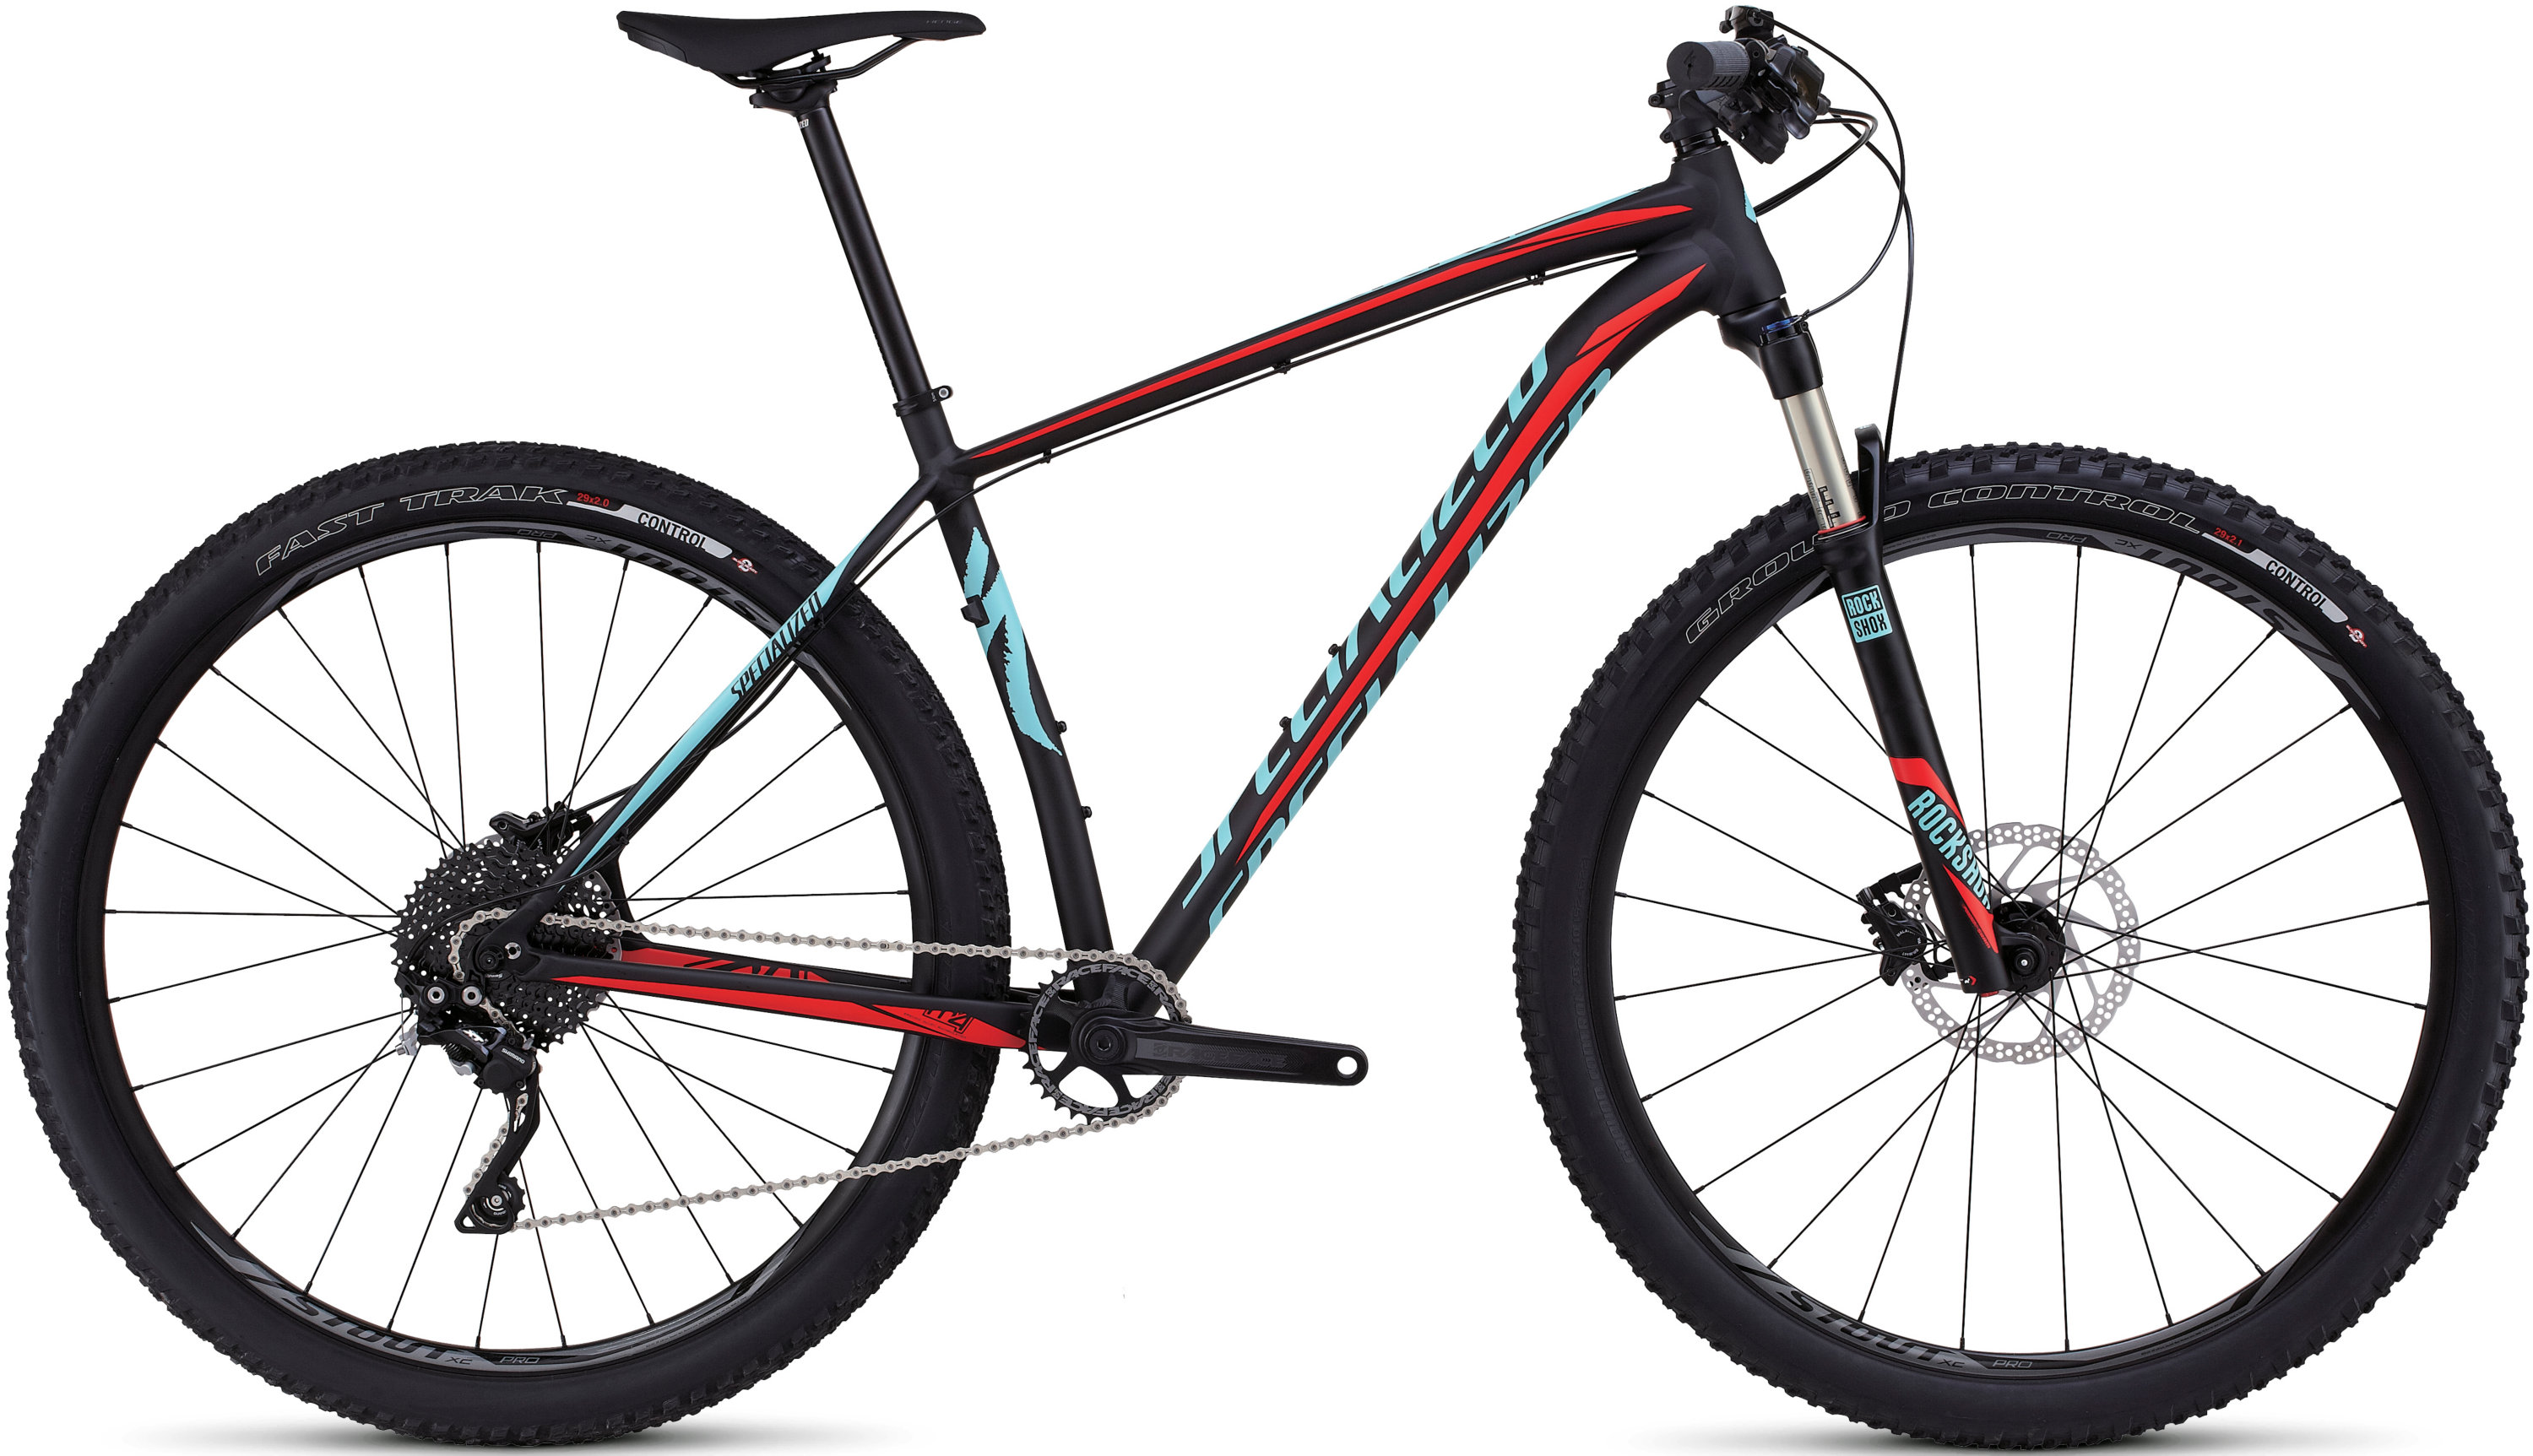 SPECIALIZED CRAVE EXPERT 29 BLK/RKTRED/TEAL S - schneider-sports